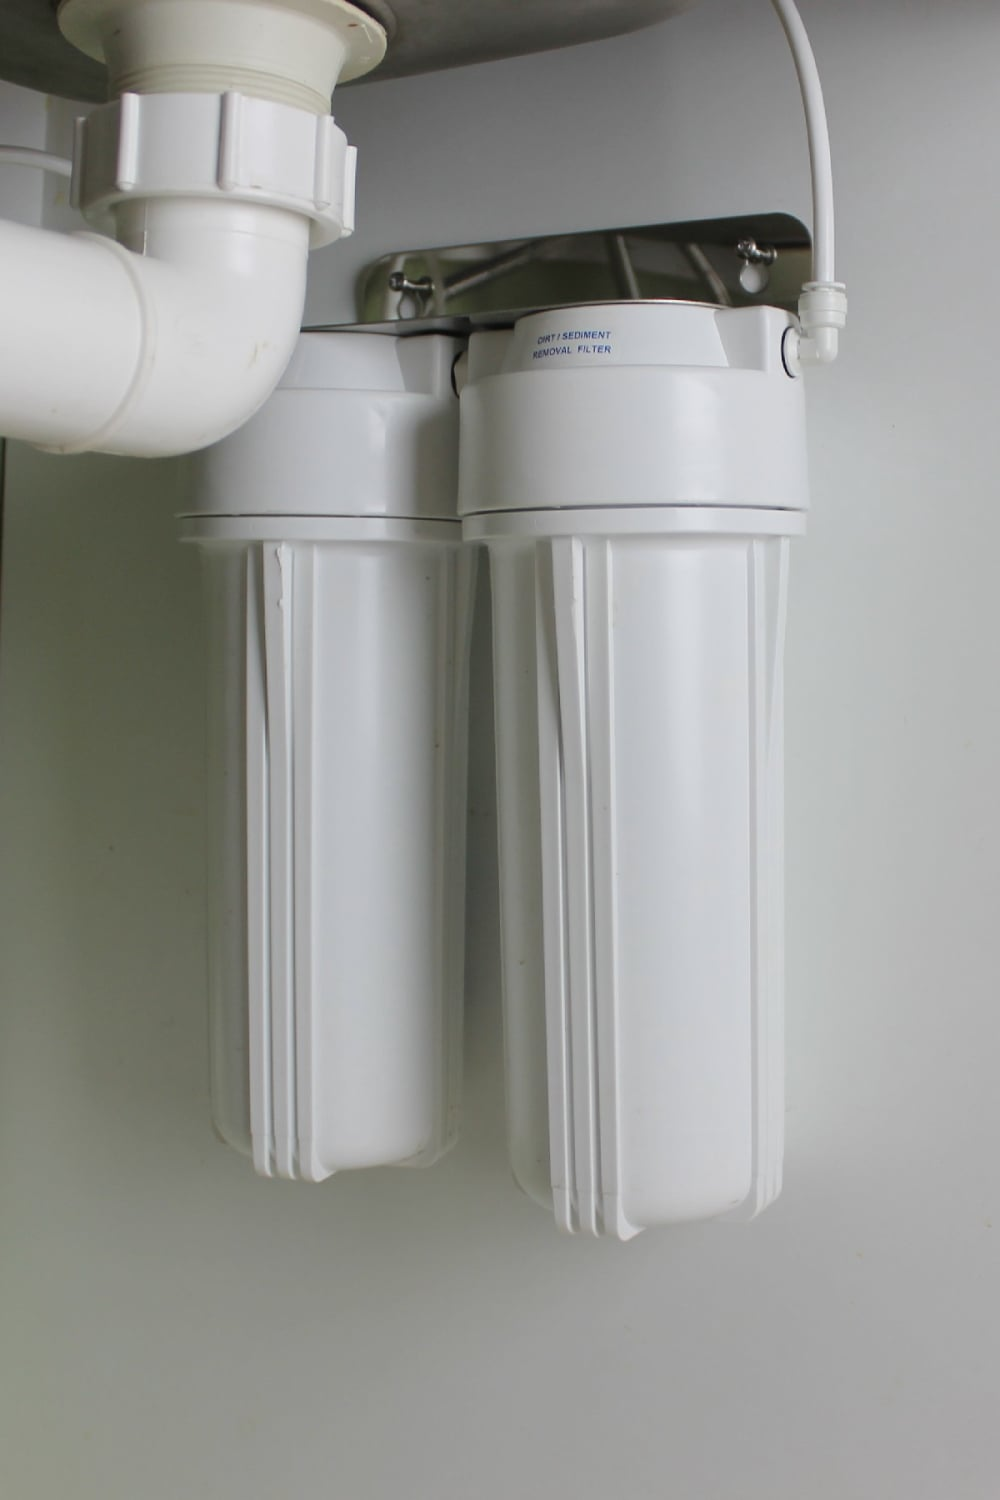 Under Sink Filter Systems Under Sink Twin Cartridge Water Filter System The Tank Doctor